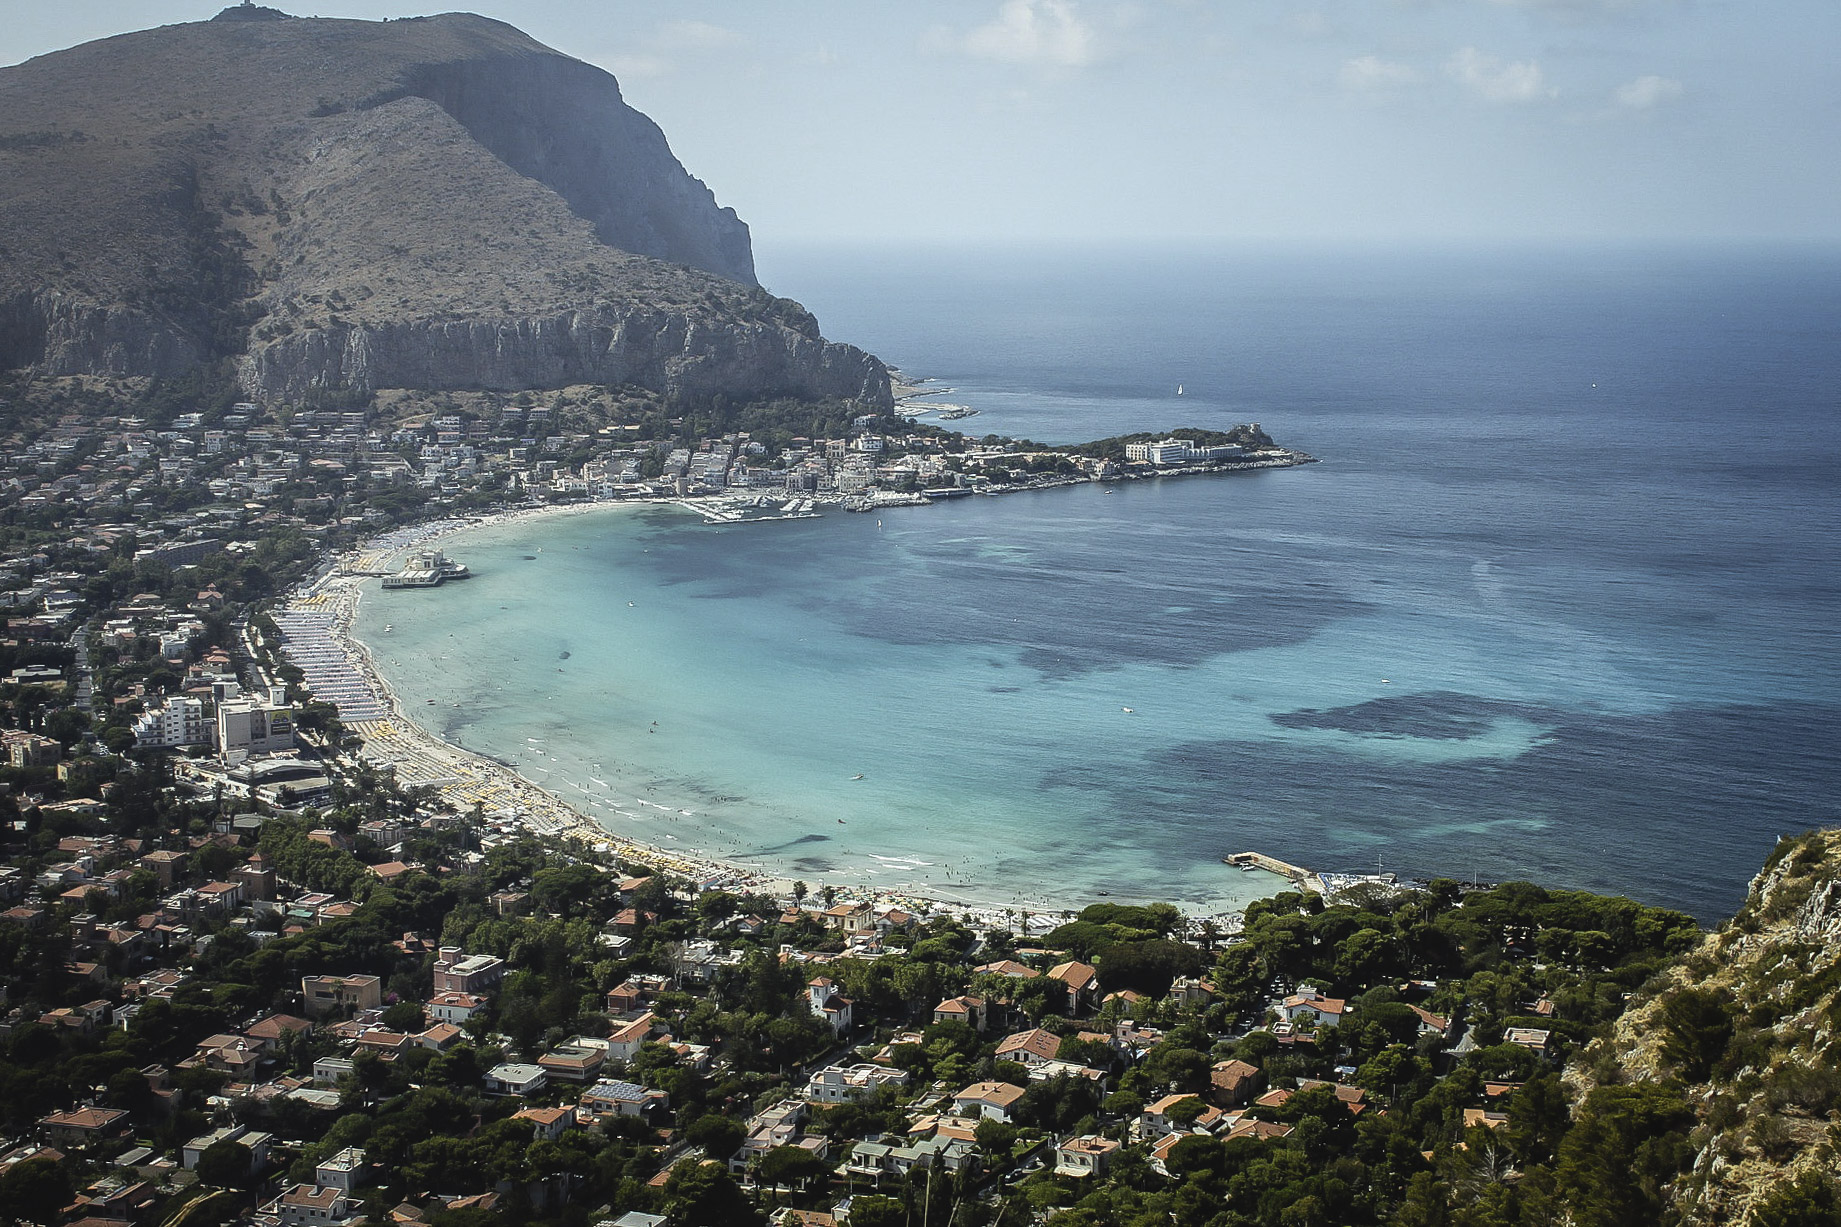 Gulf of Mondello - Palermo